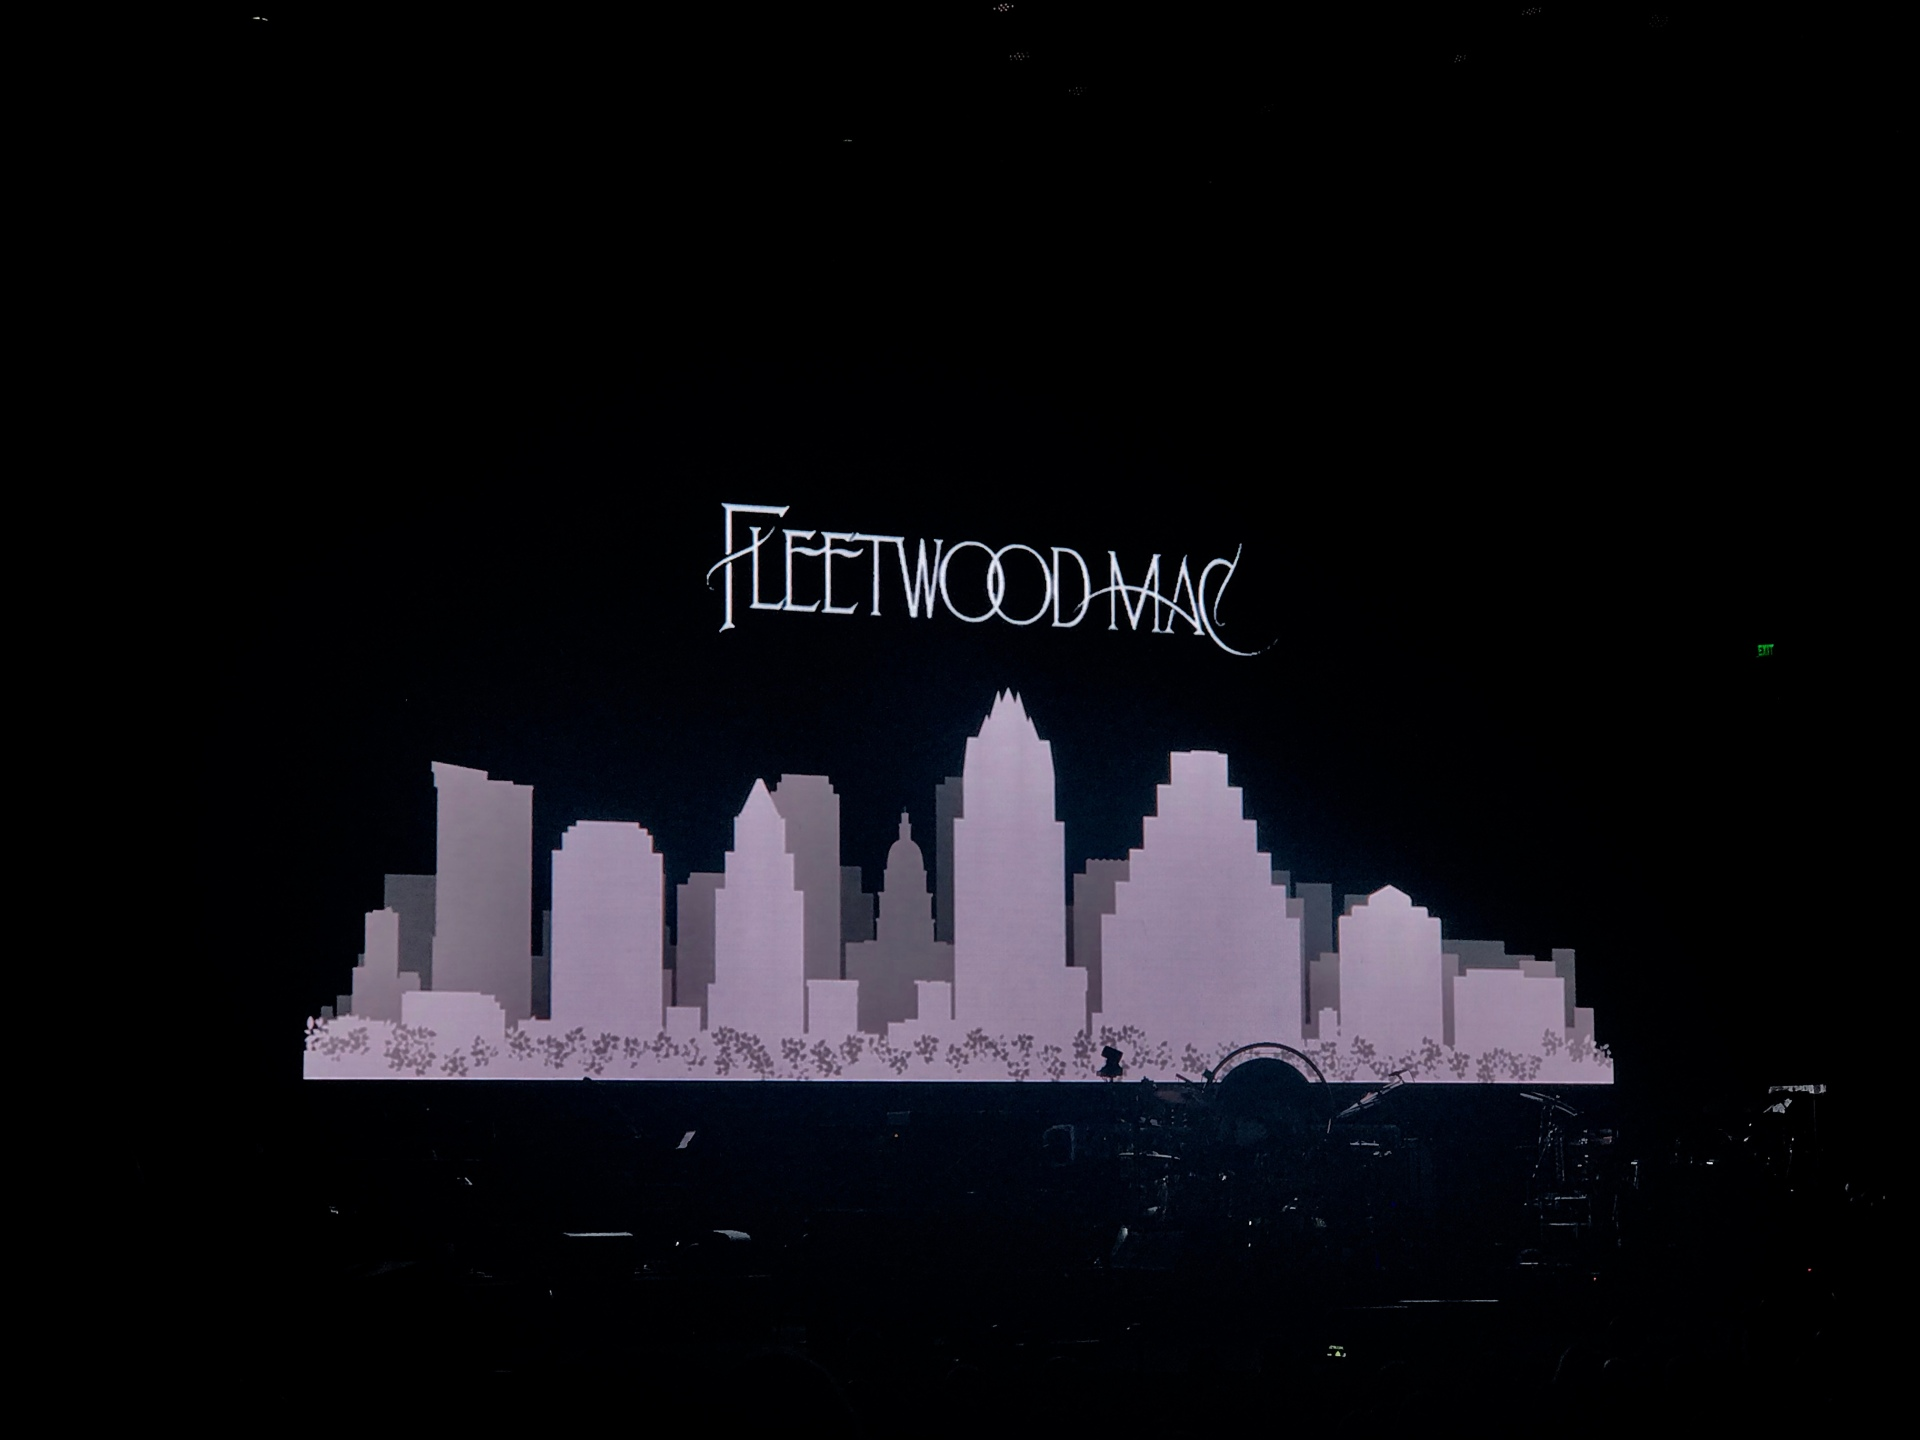 Black screen with Fleetwood Mac written in white and a white city skyline underneath.